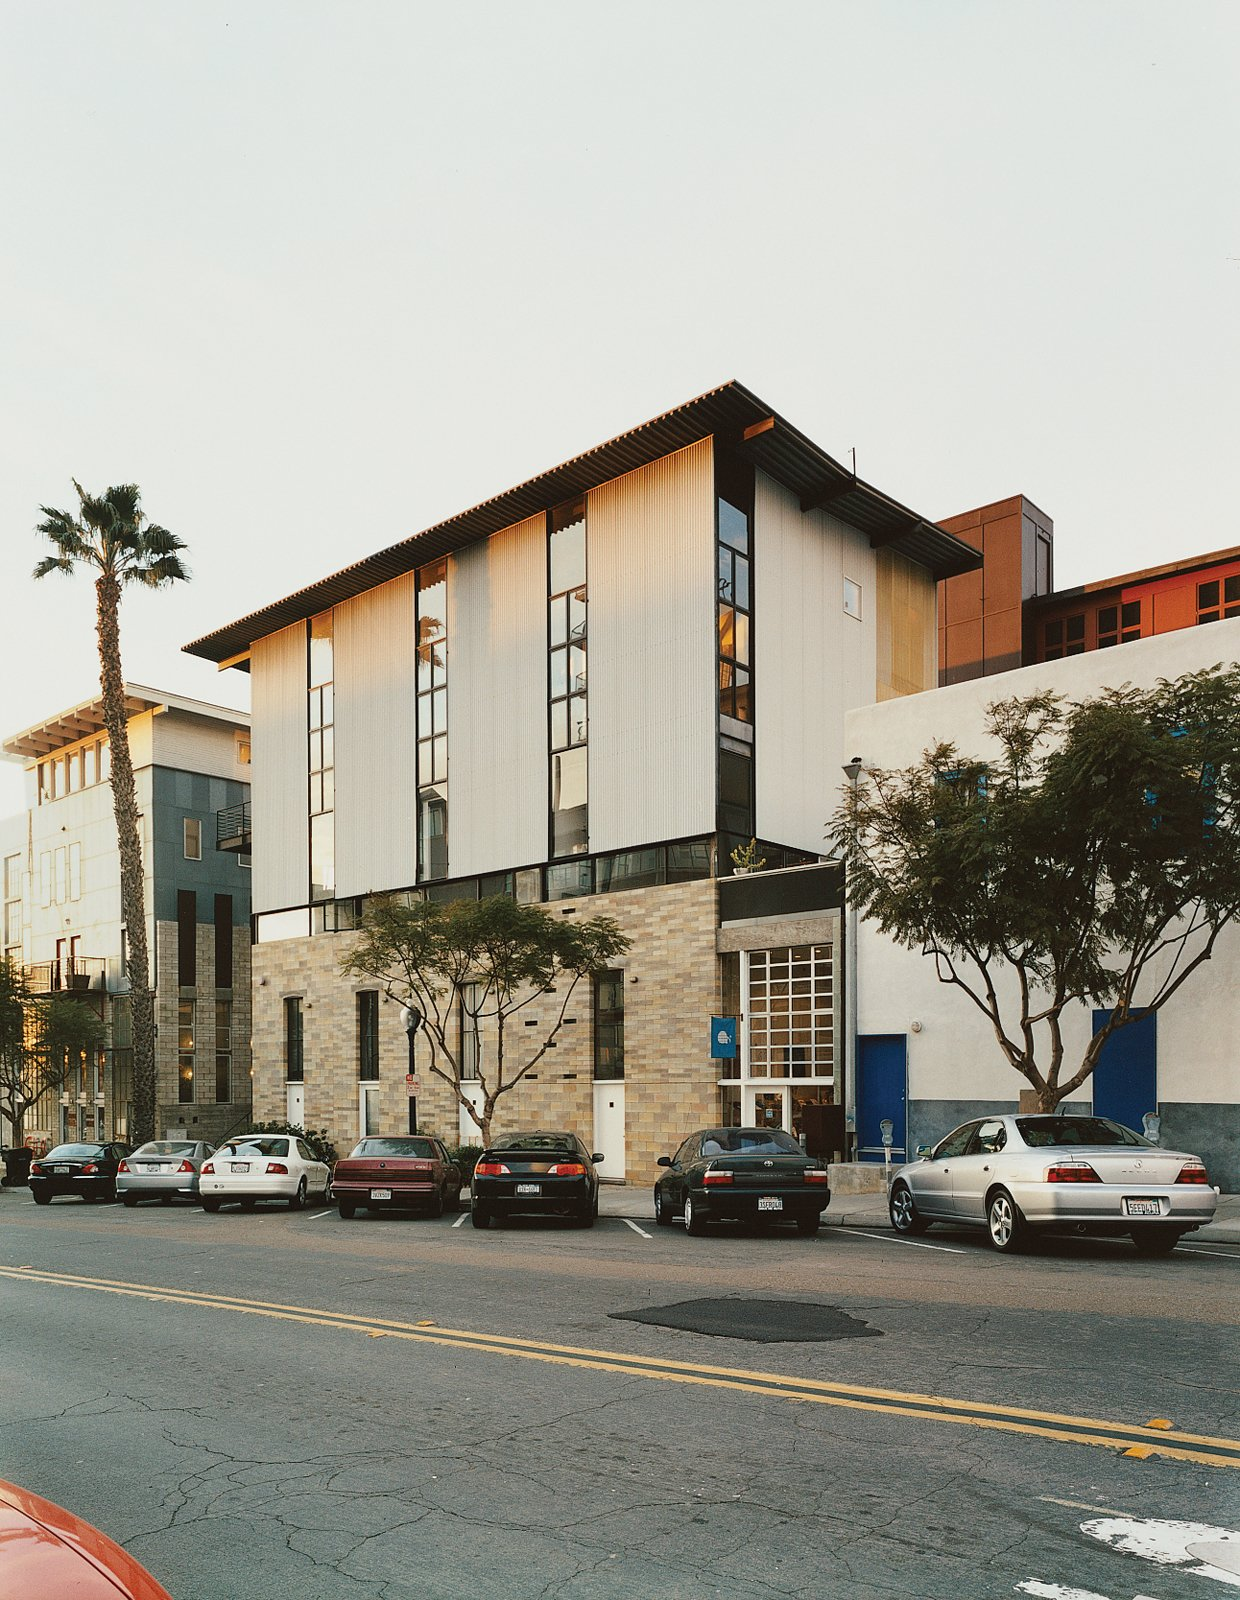 The Schafers' building, The Merrimac, built in 1999, is one of San Diego's first modern, mixed-use redevelopment projects.